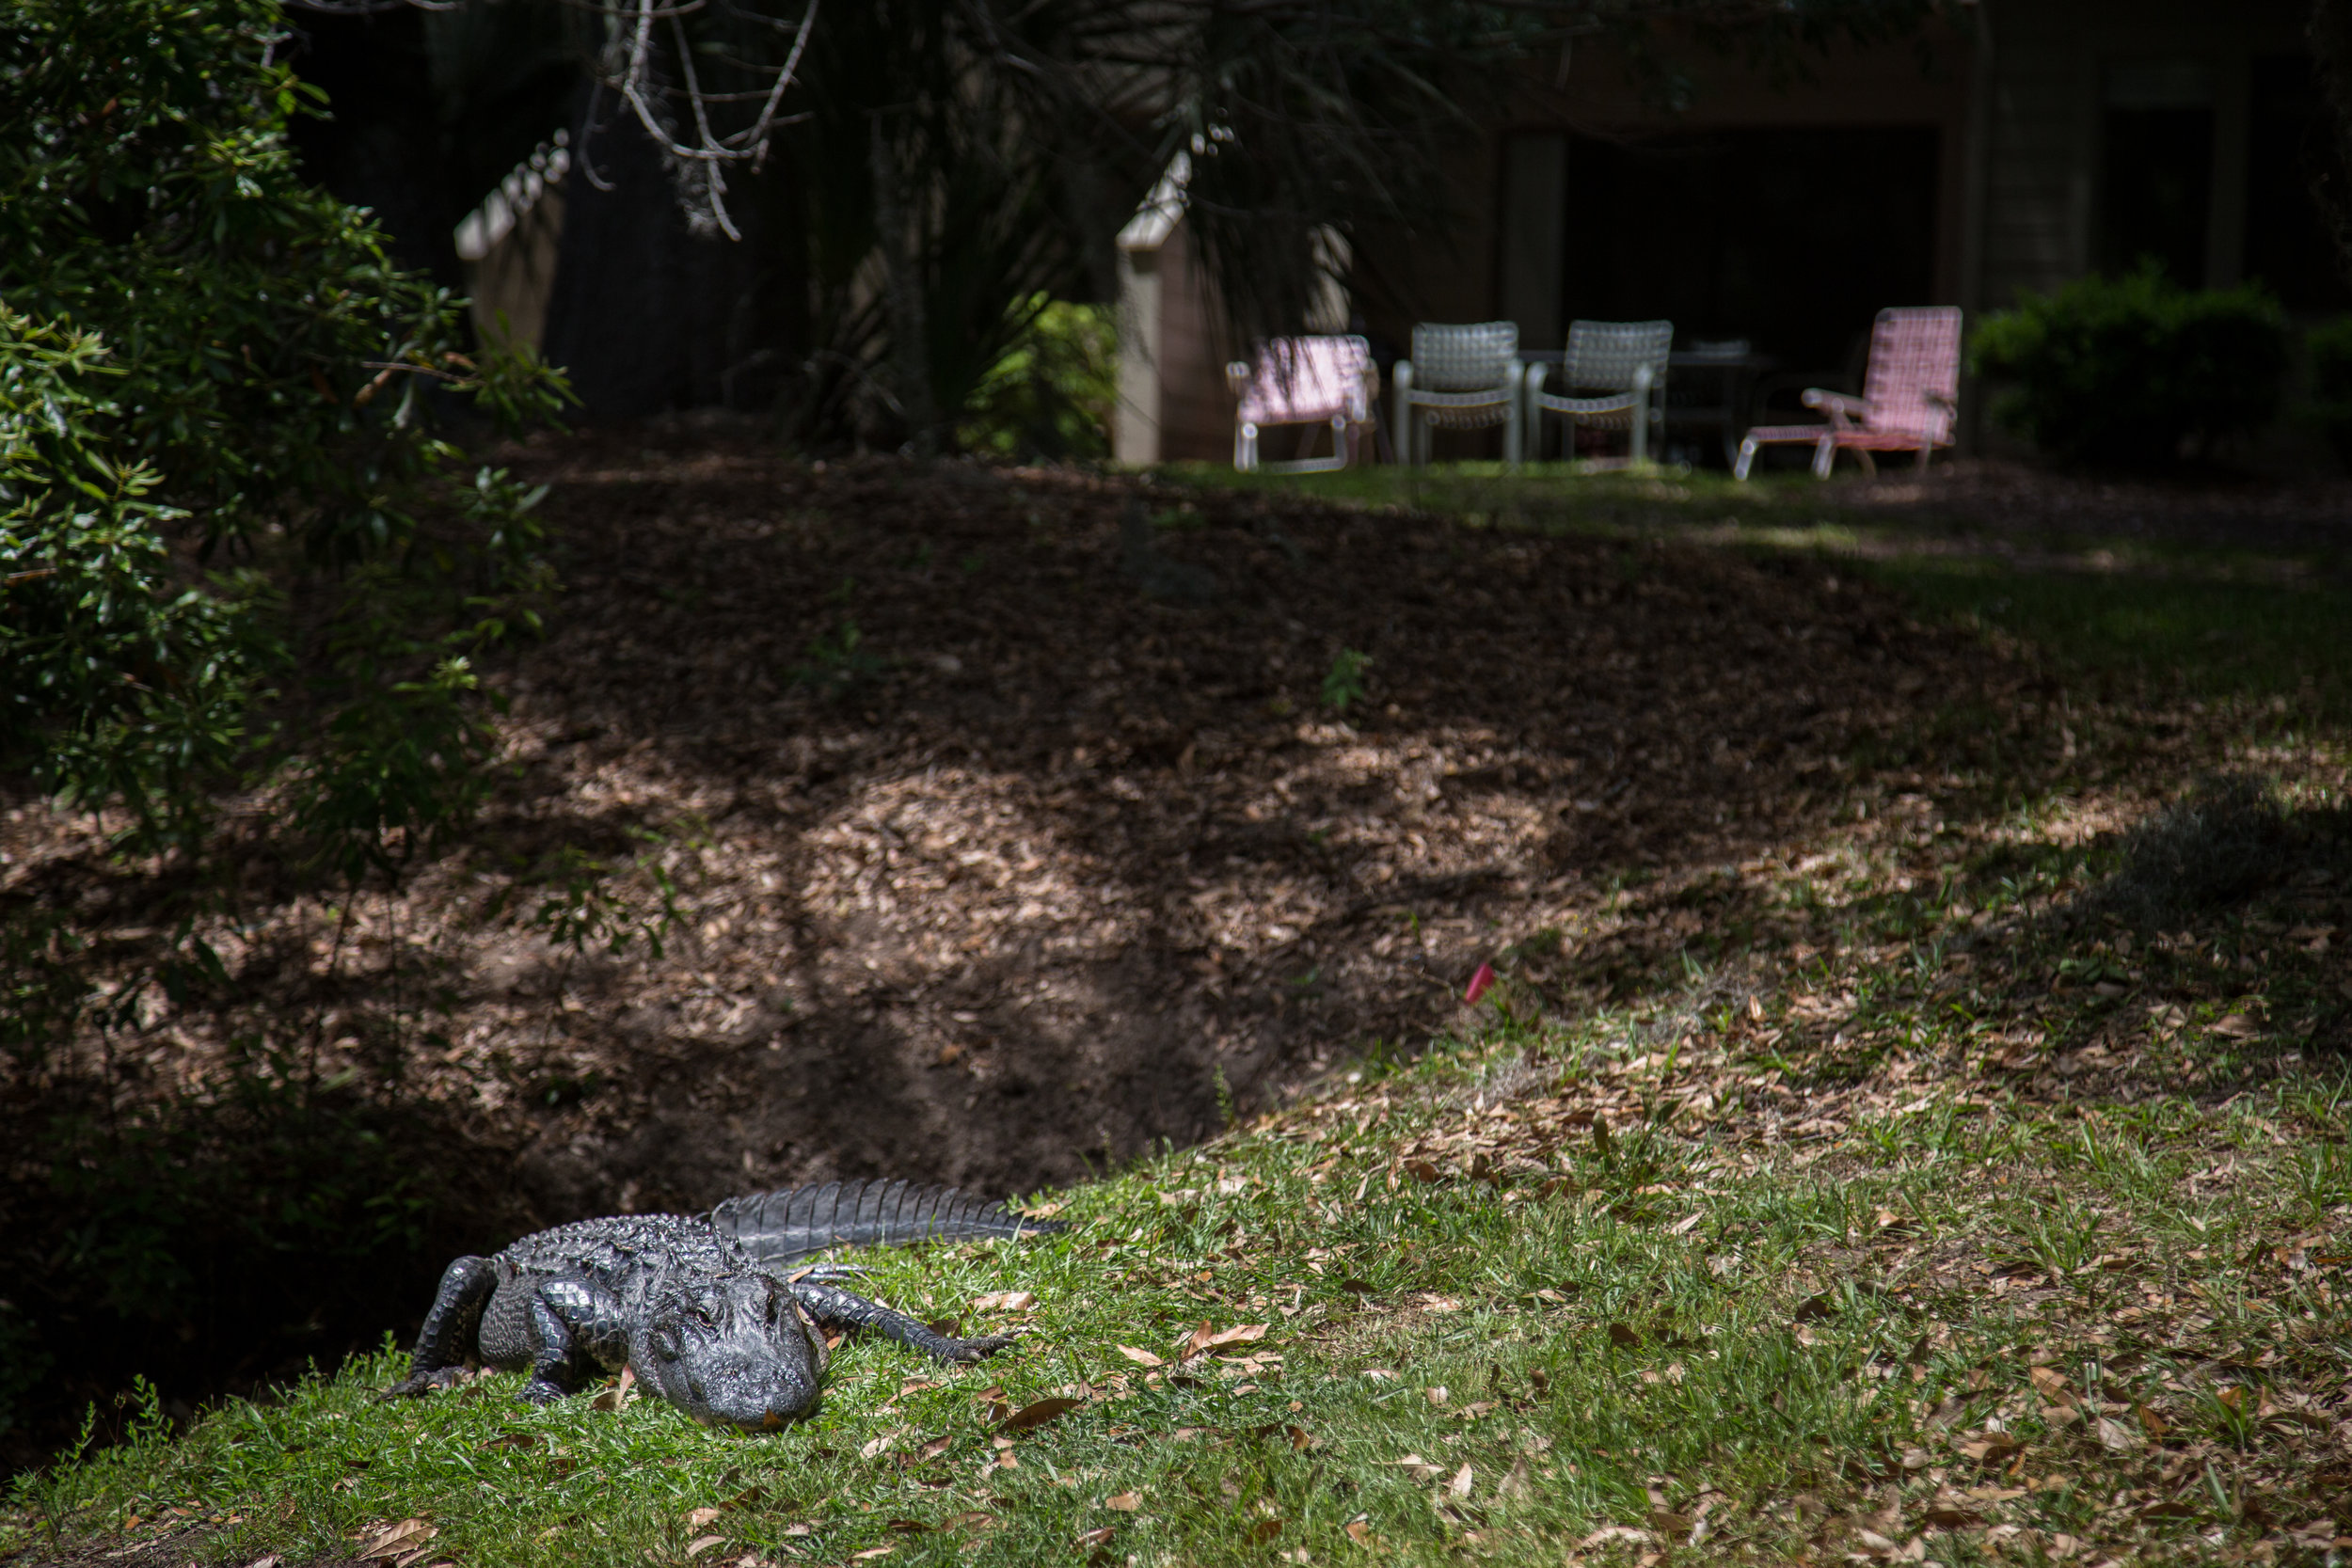 Hilton Head Alligator-16.jpg